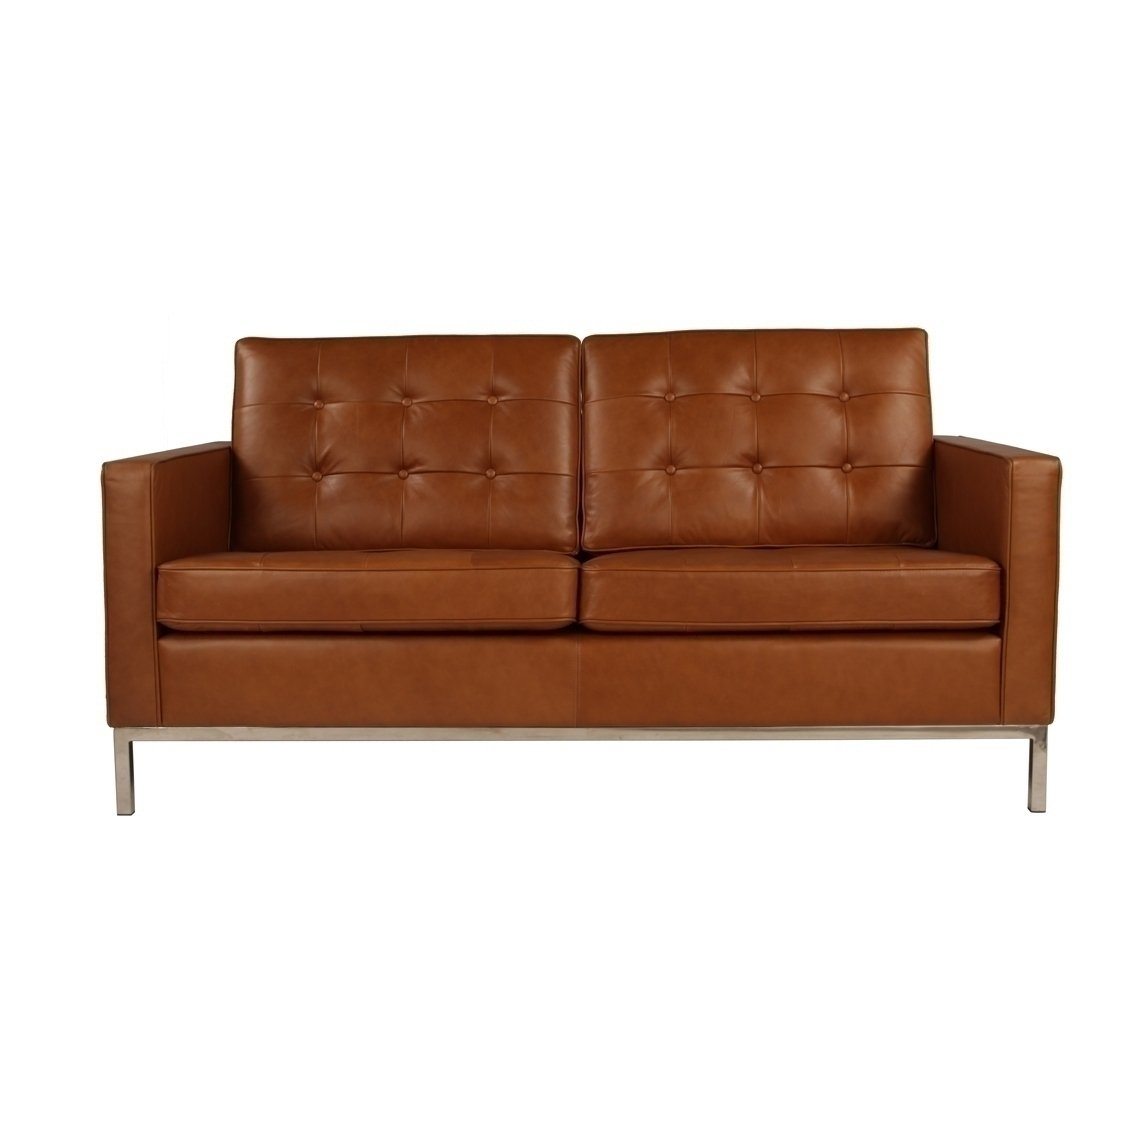 Florence Leather Loveseat | Florence | Njmodern Furniture For Florence Leather Sofas (View 4 of 15)